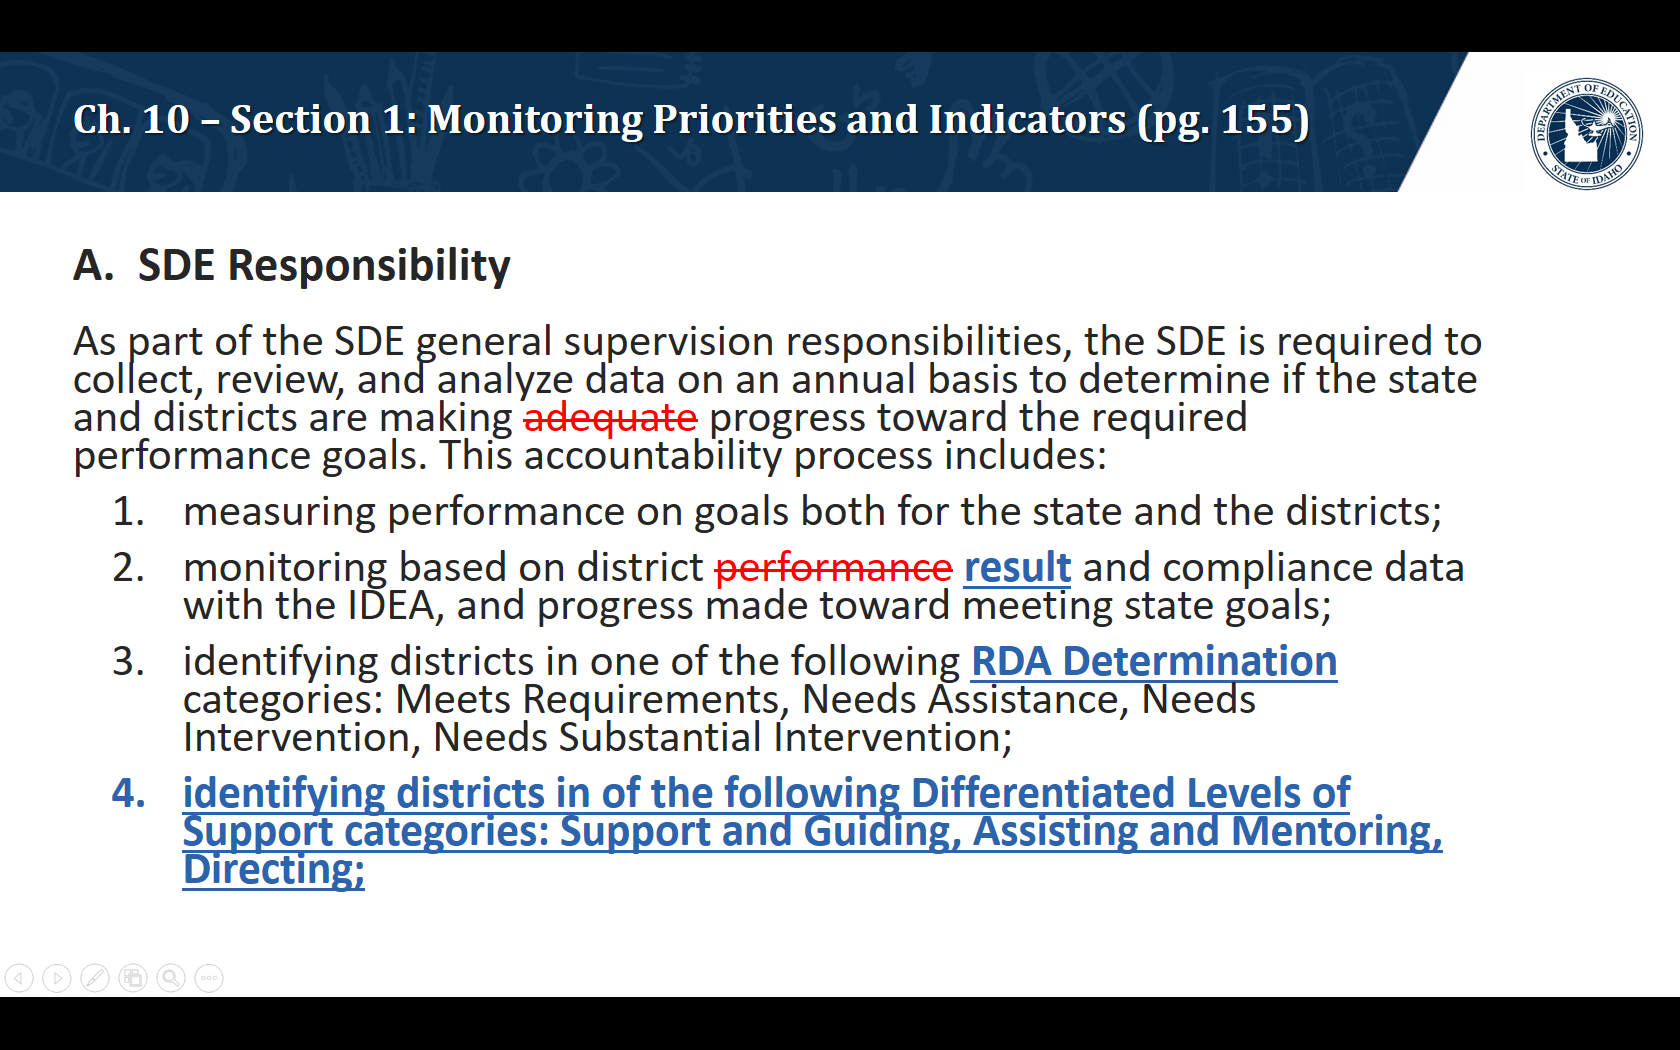 A.  SDE Responsibility. As part of the SDE general supervision responsibilities, the SDE is required to collect, review, and analyze data on an annual basis to determine if the state and districts are making progress toward the required performance goals. This accountability process includes: measuring performance on goals both for the state and the districts; monitoring based on district result and compliance data with the IDEA, and progress made toward meeting state goals; identifying districts in one of the following RDA Determination categories: Meets Requirements, Needs Assistance, Needs Intervention, Needs Substantial Intervention; identifying districts in of the following Differentiated Levels of Support categories: Support and Guiding, Assisting and Mentoring, Directing;